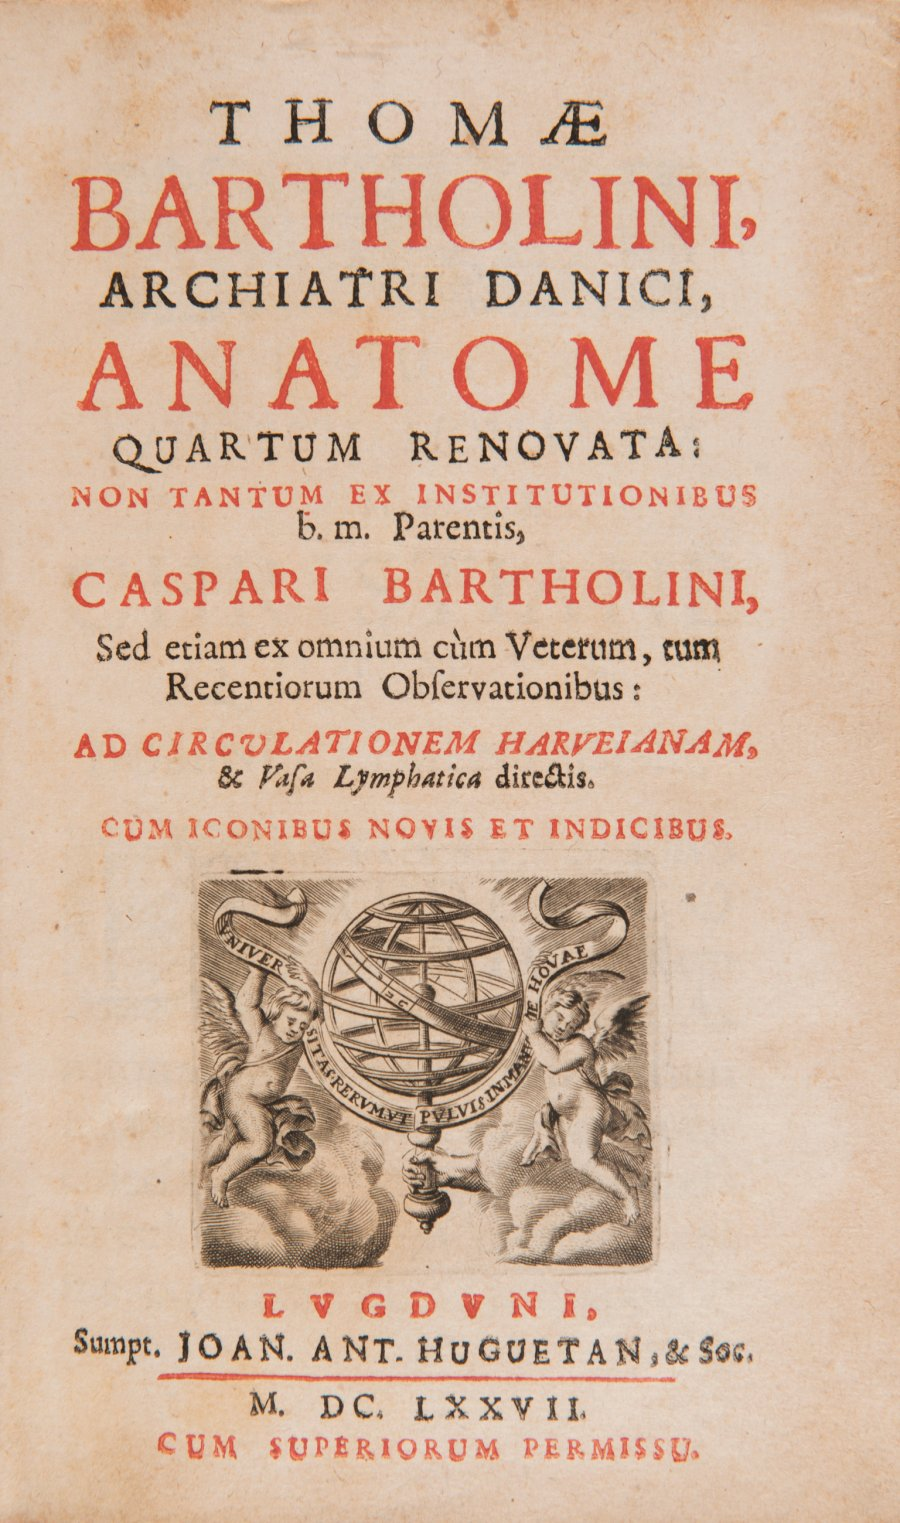 ANATOME QUARTUM RENOVATA (Anatomy, 4th Edition)